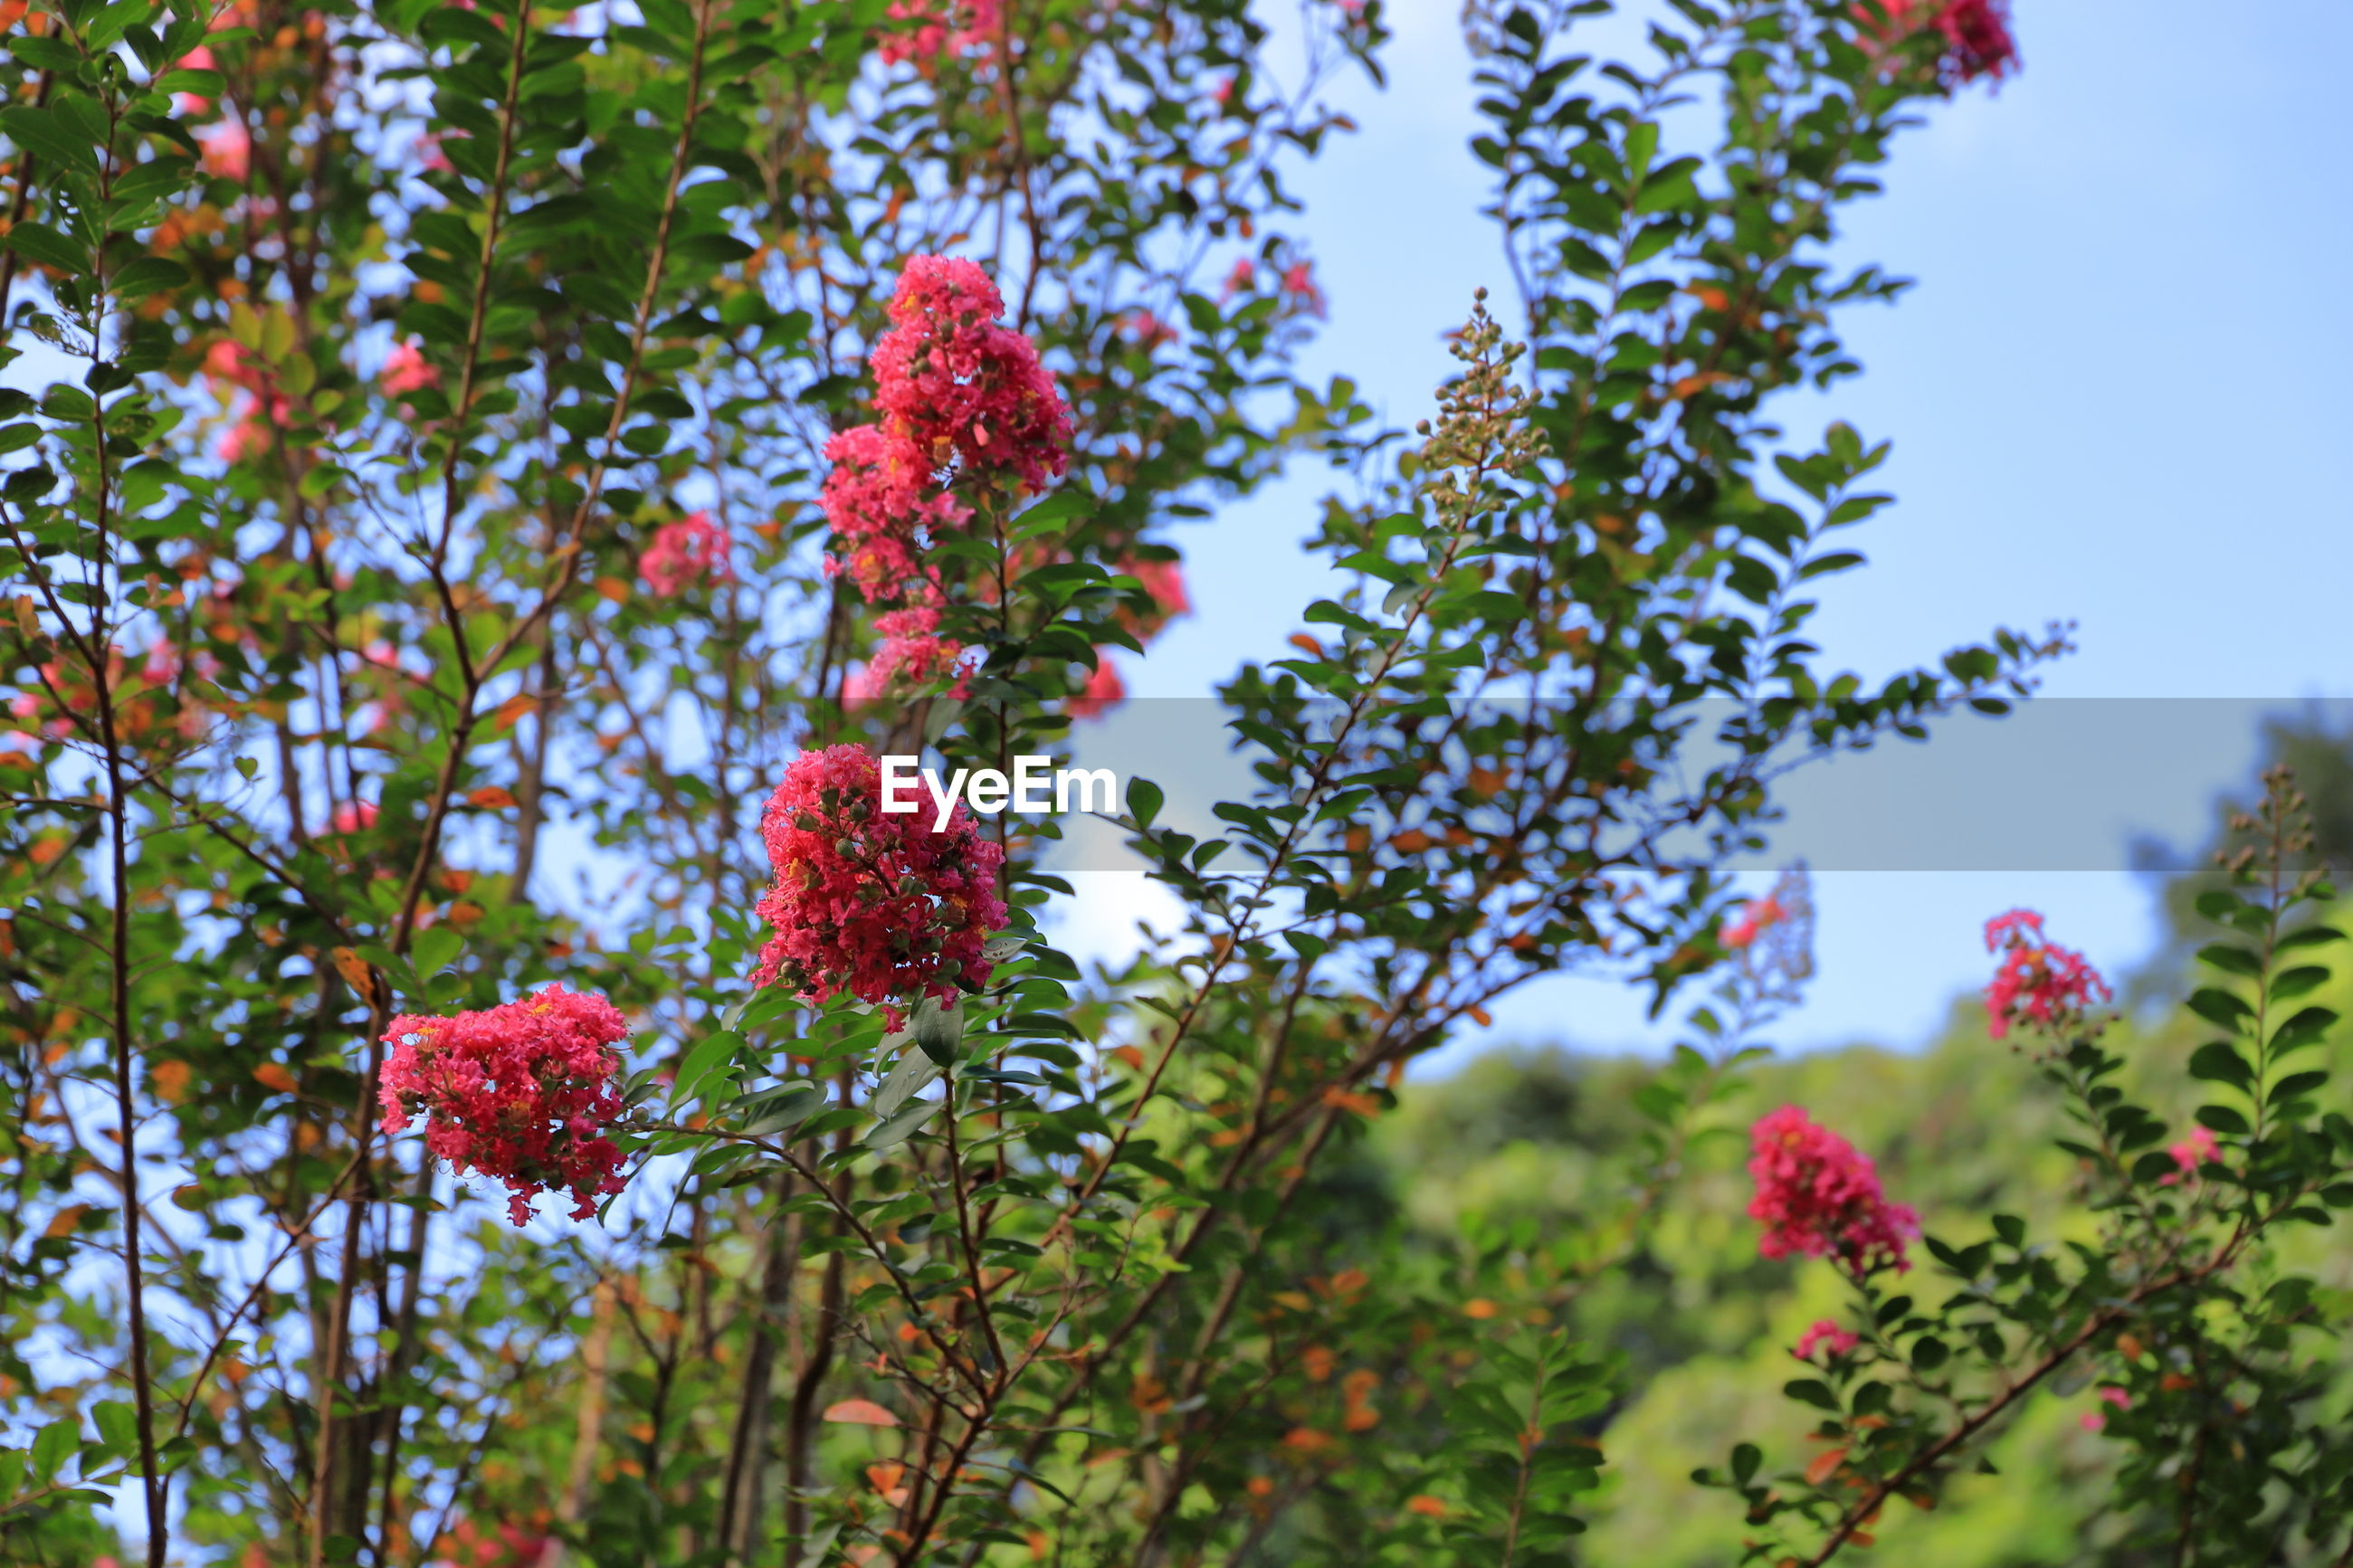 Low angle view of flowering plants against trees